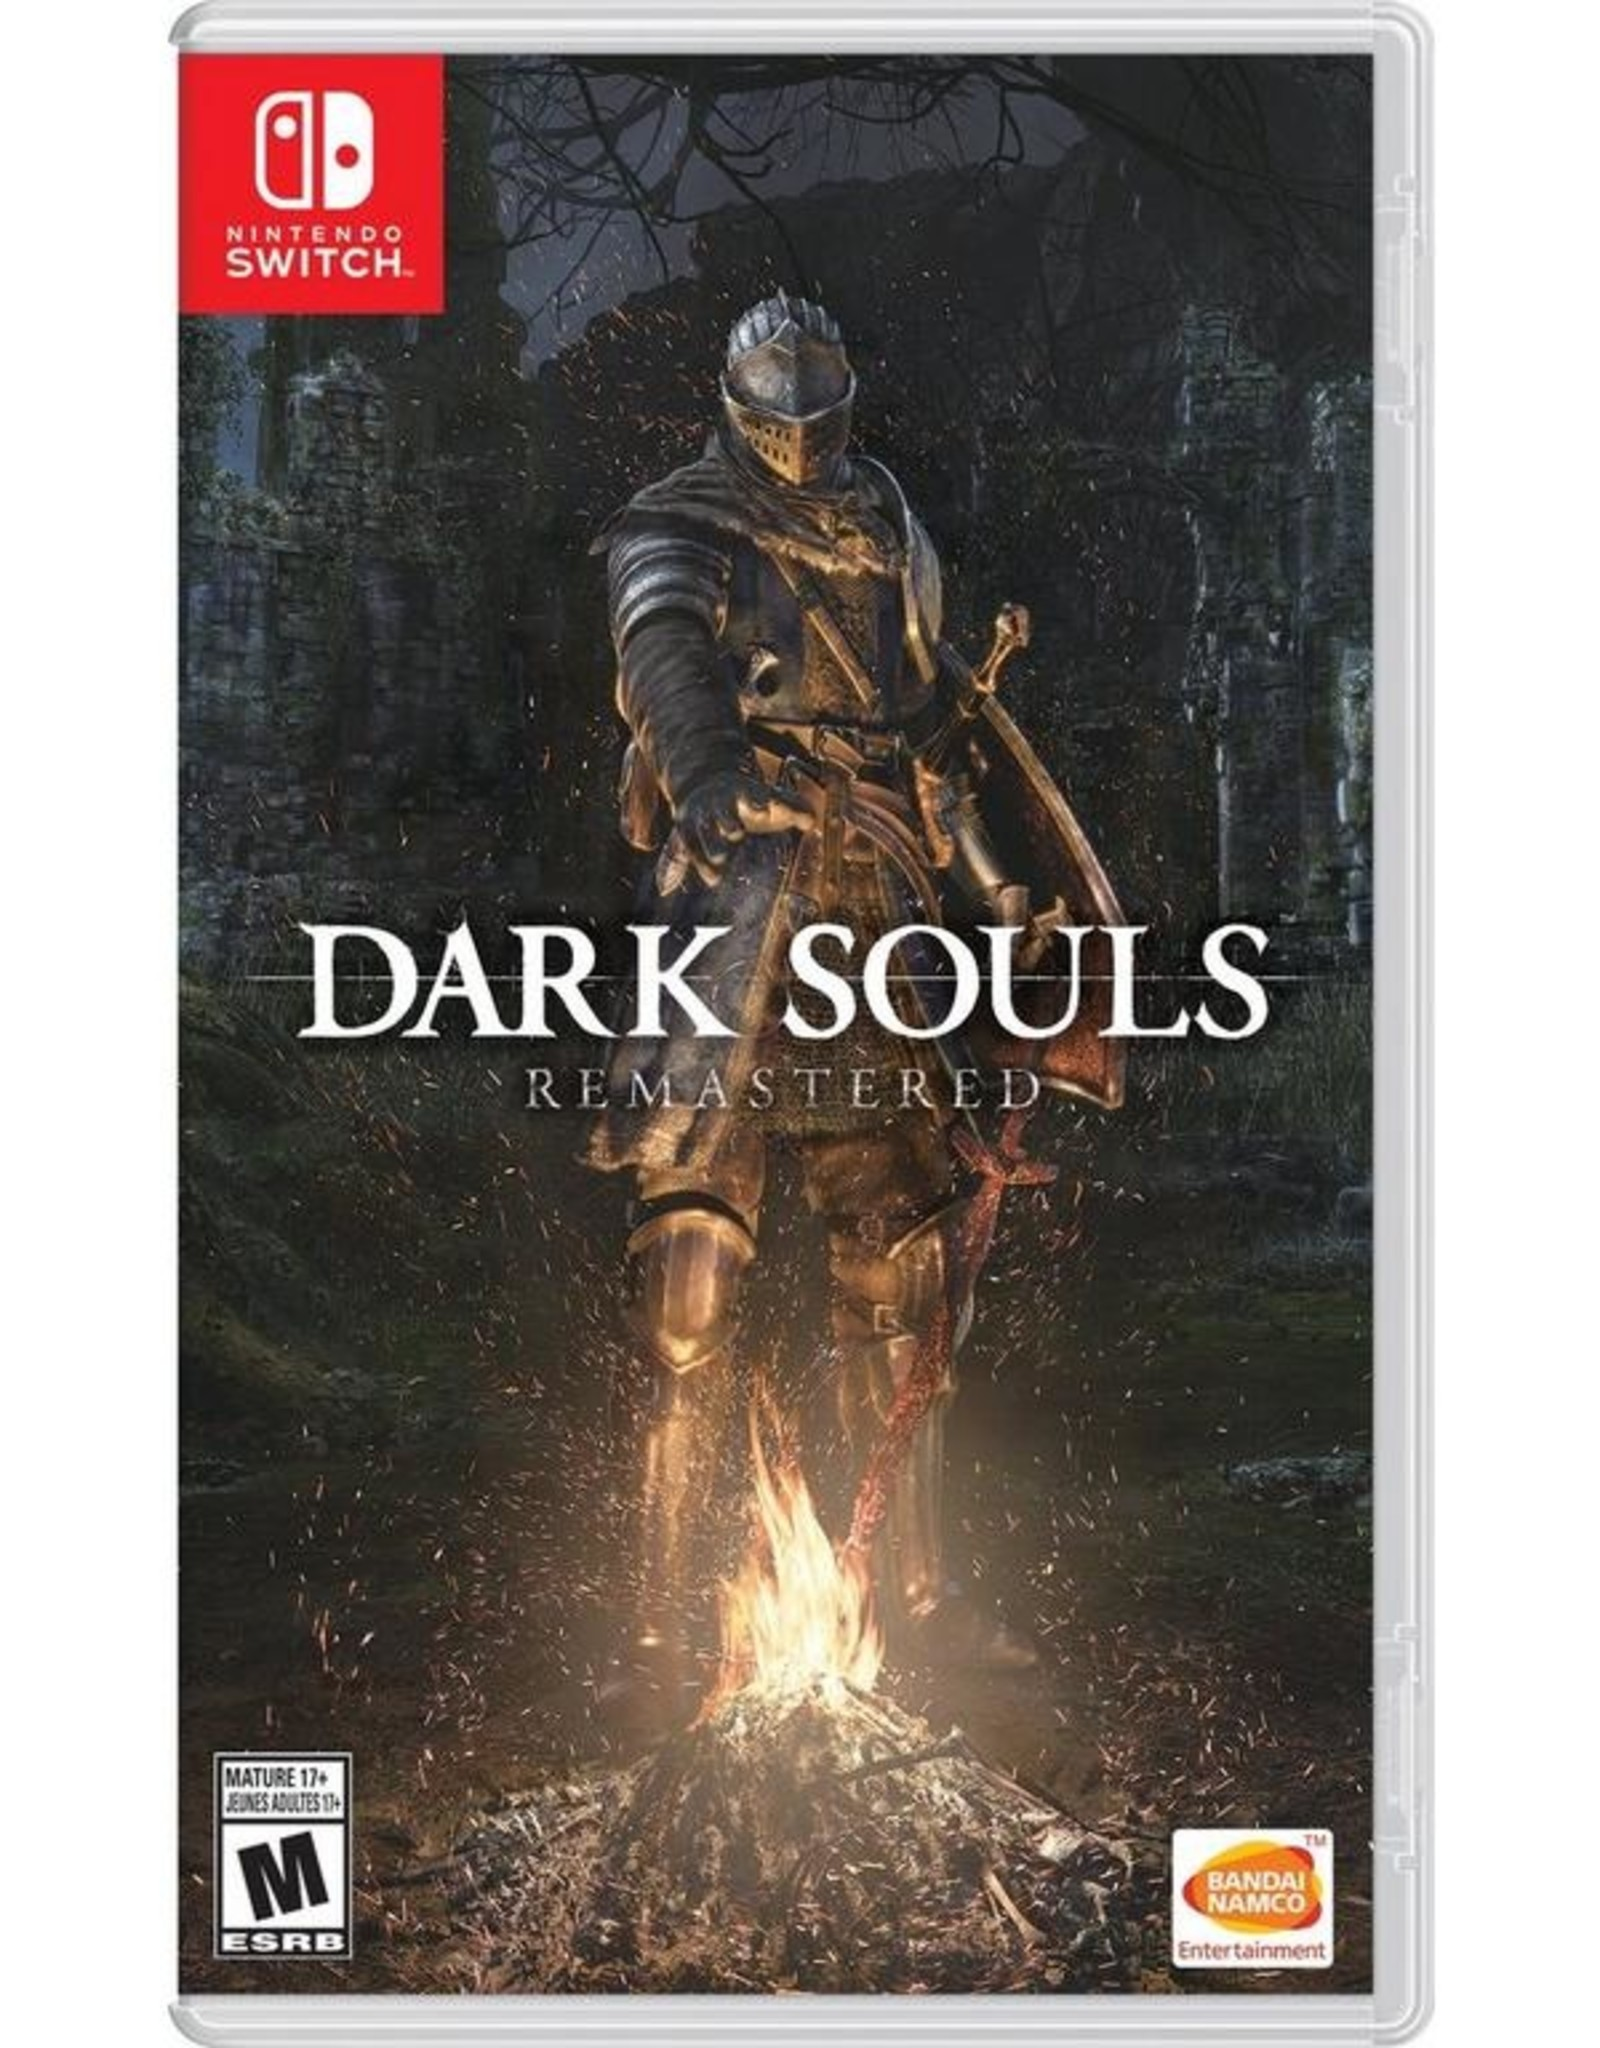 Dark Souls: Remastered - N-SWITCH DIGITAL